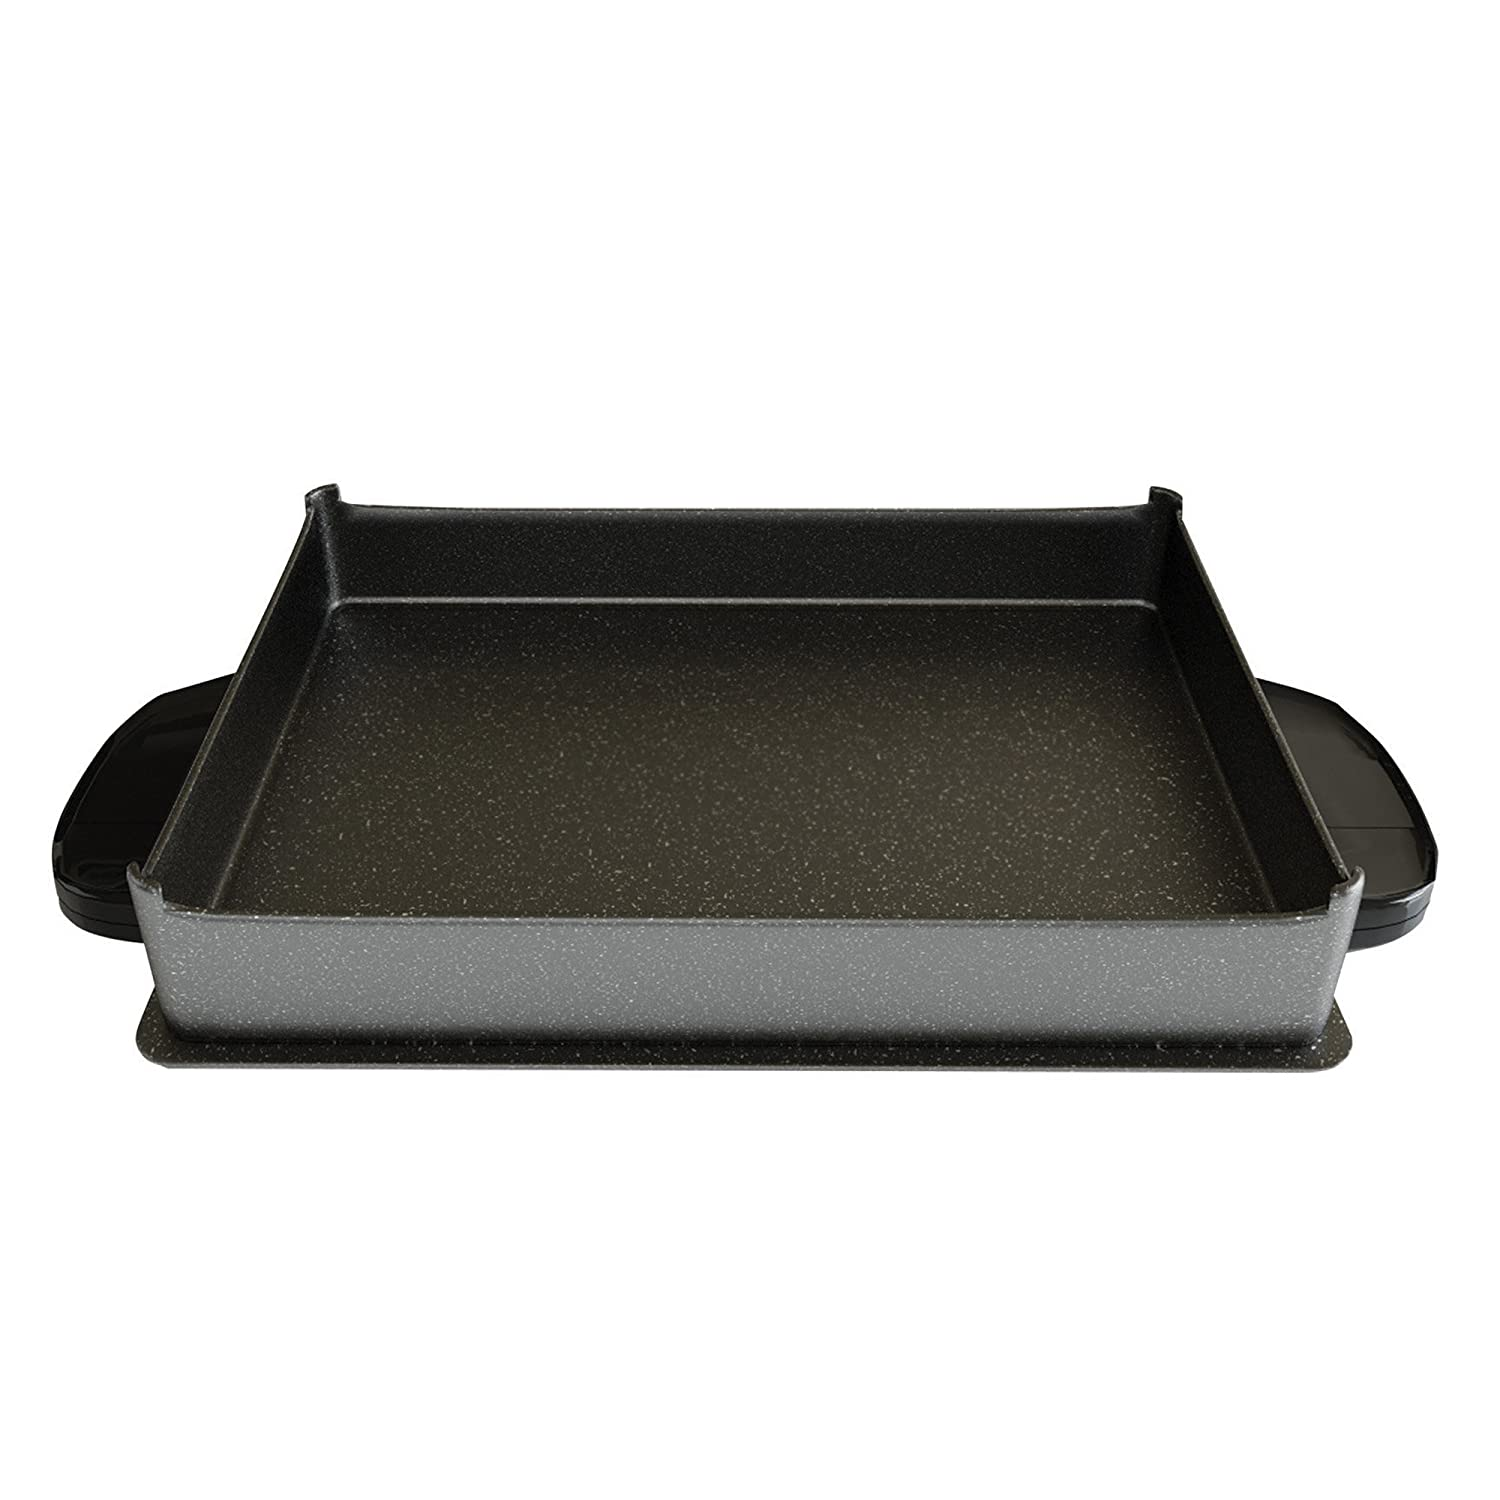 George Foreman Evolve Grill System Bake Dish, GFP84BP